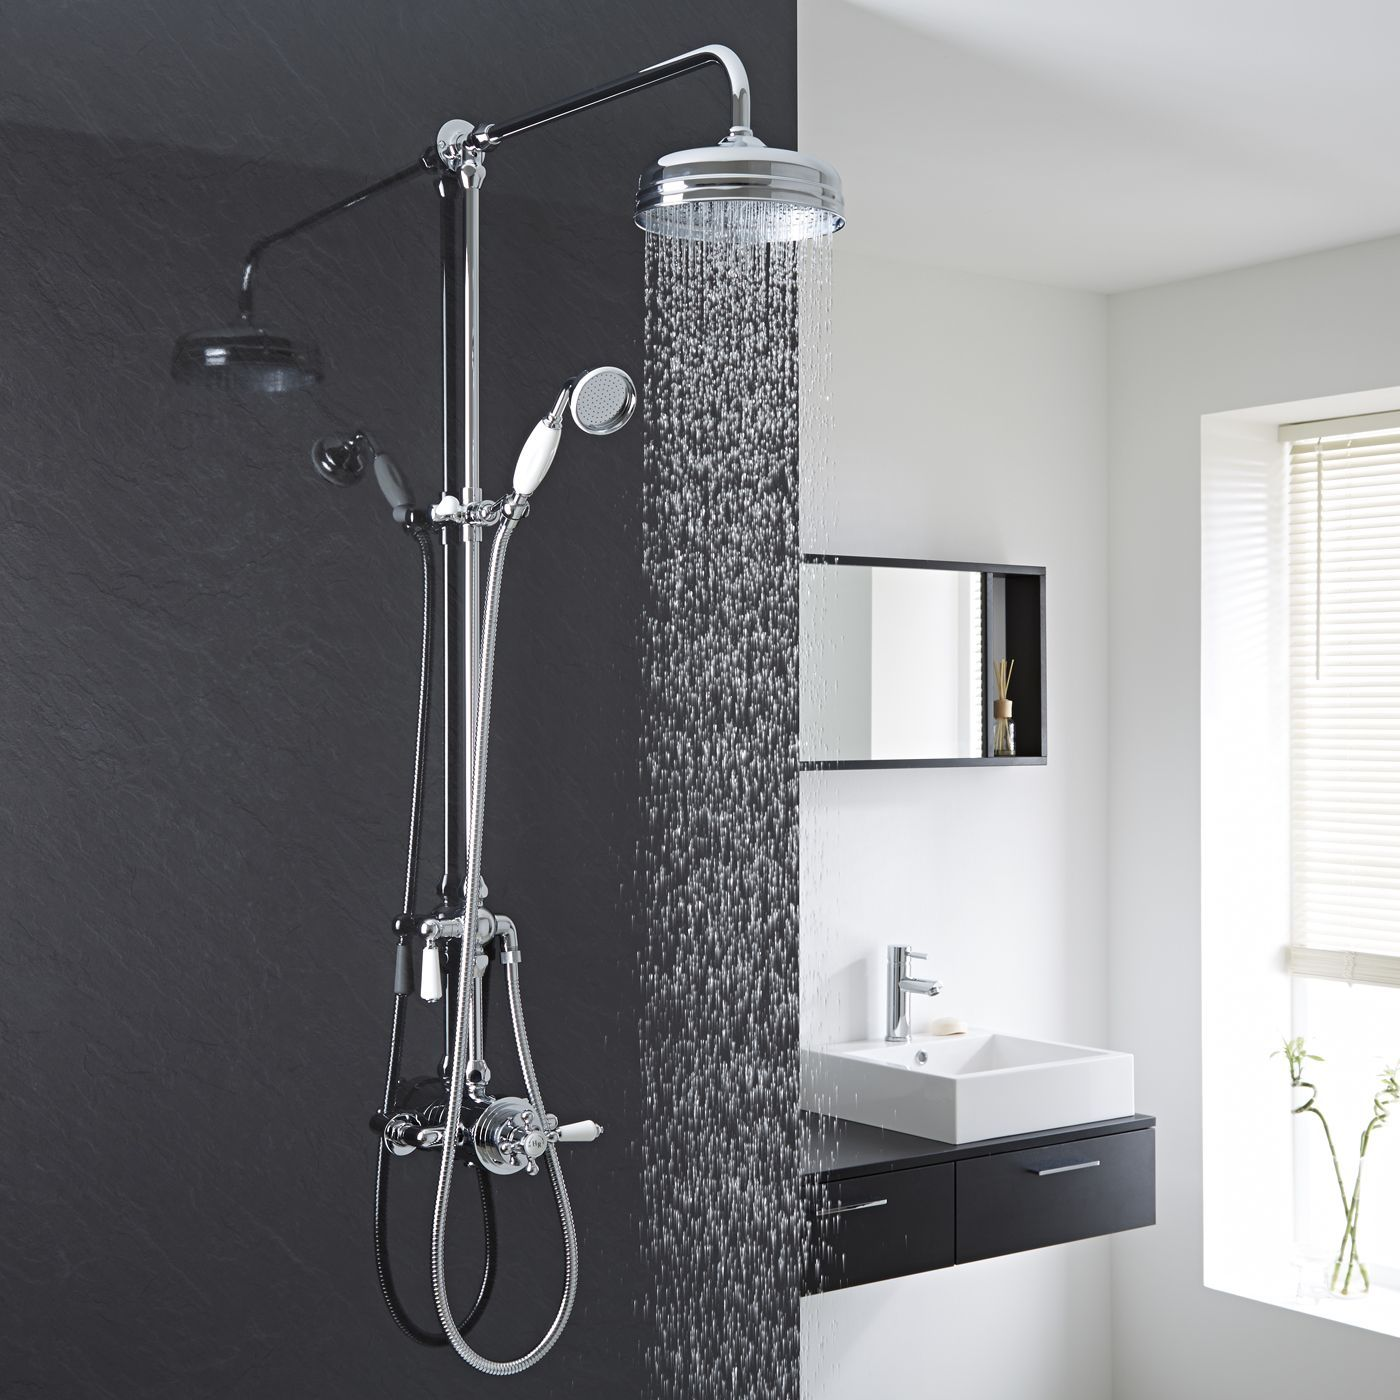 Dual Exposed Traditional Thermostatic Shower Valve with Grand Rigid ...